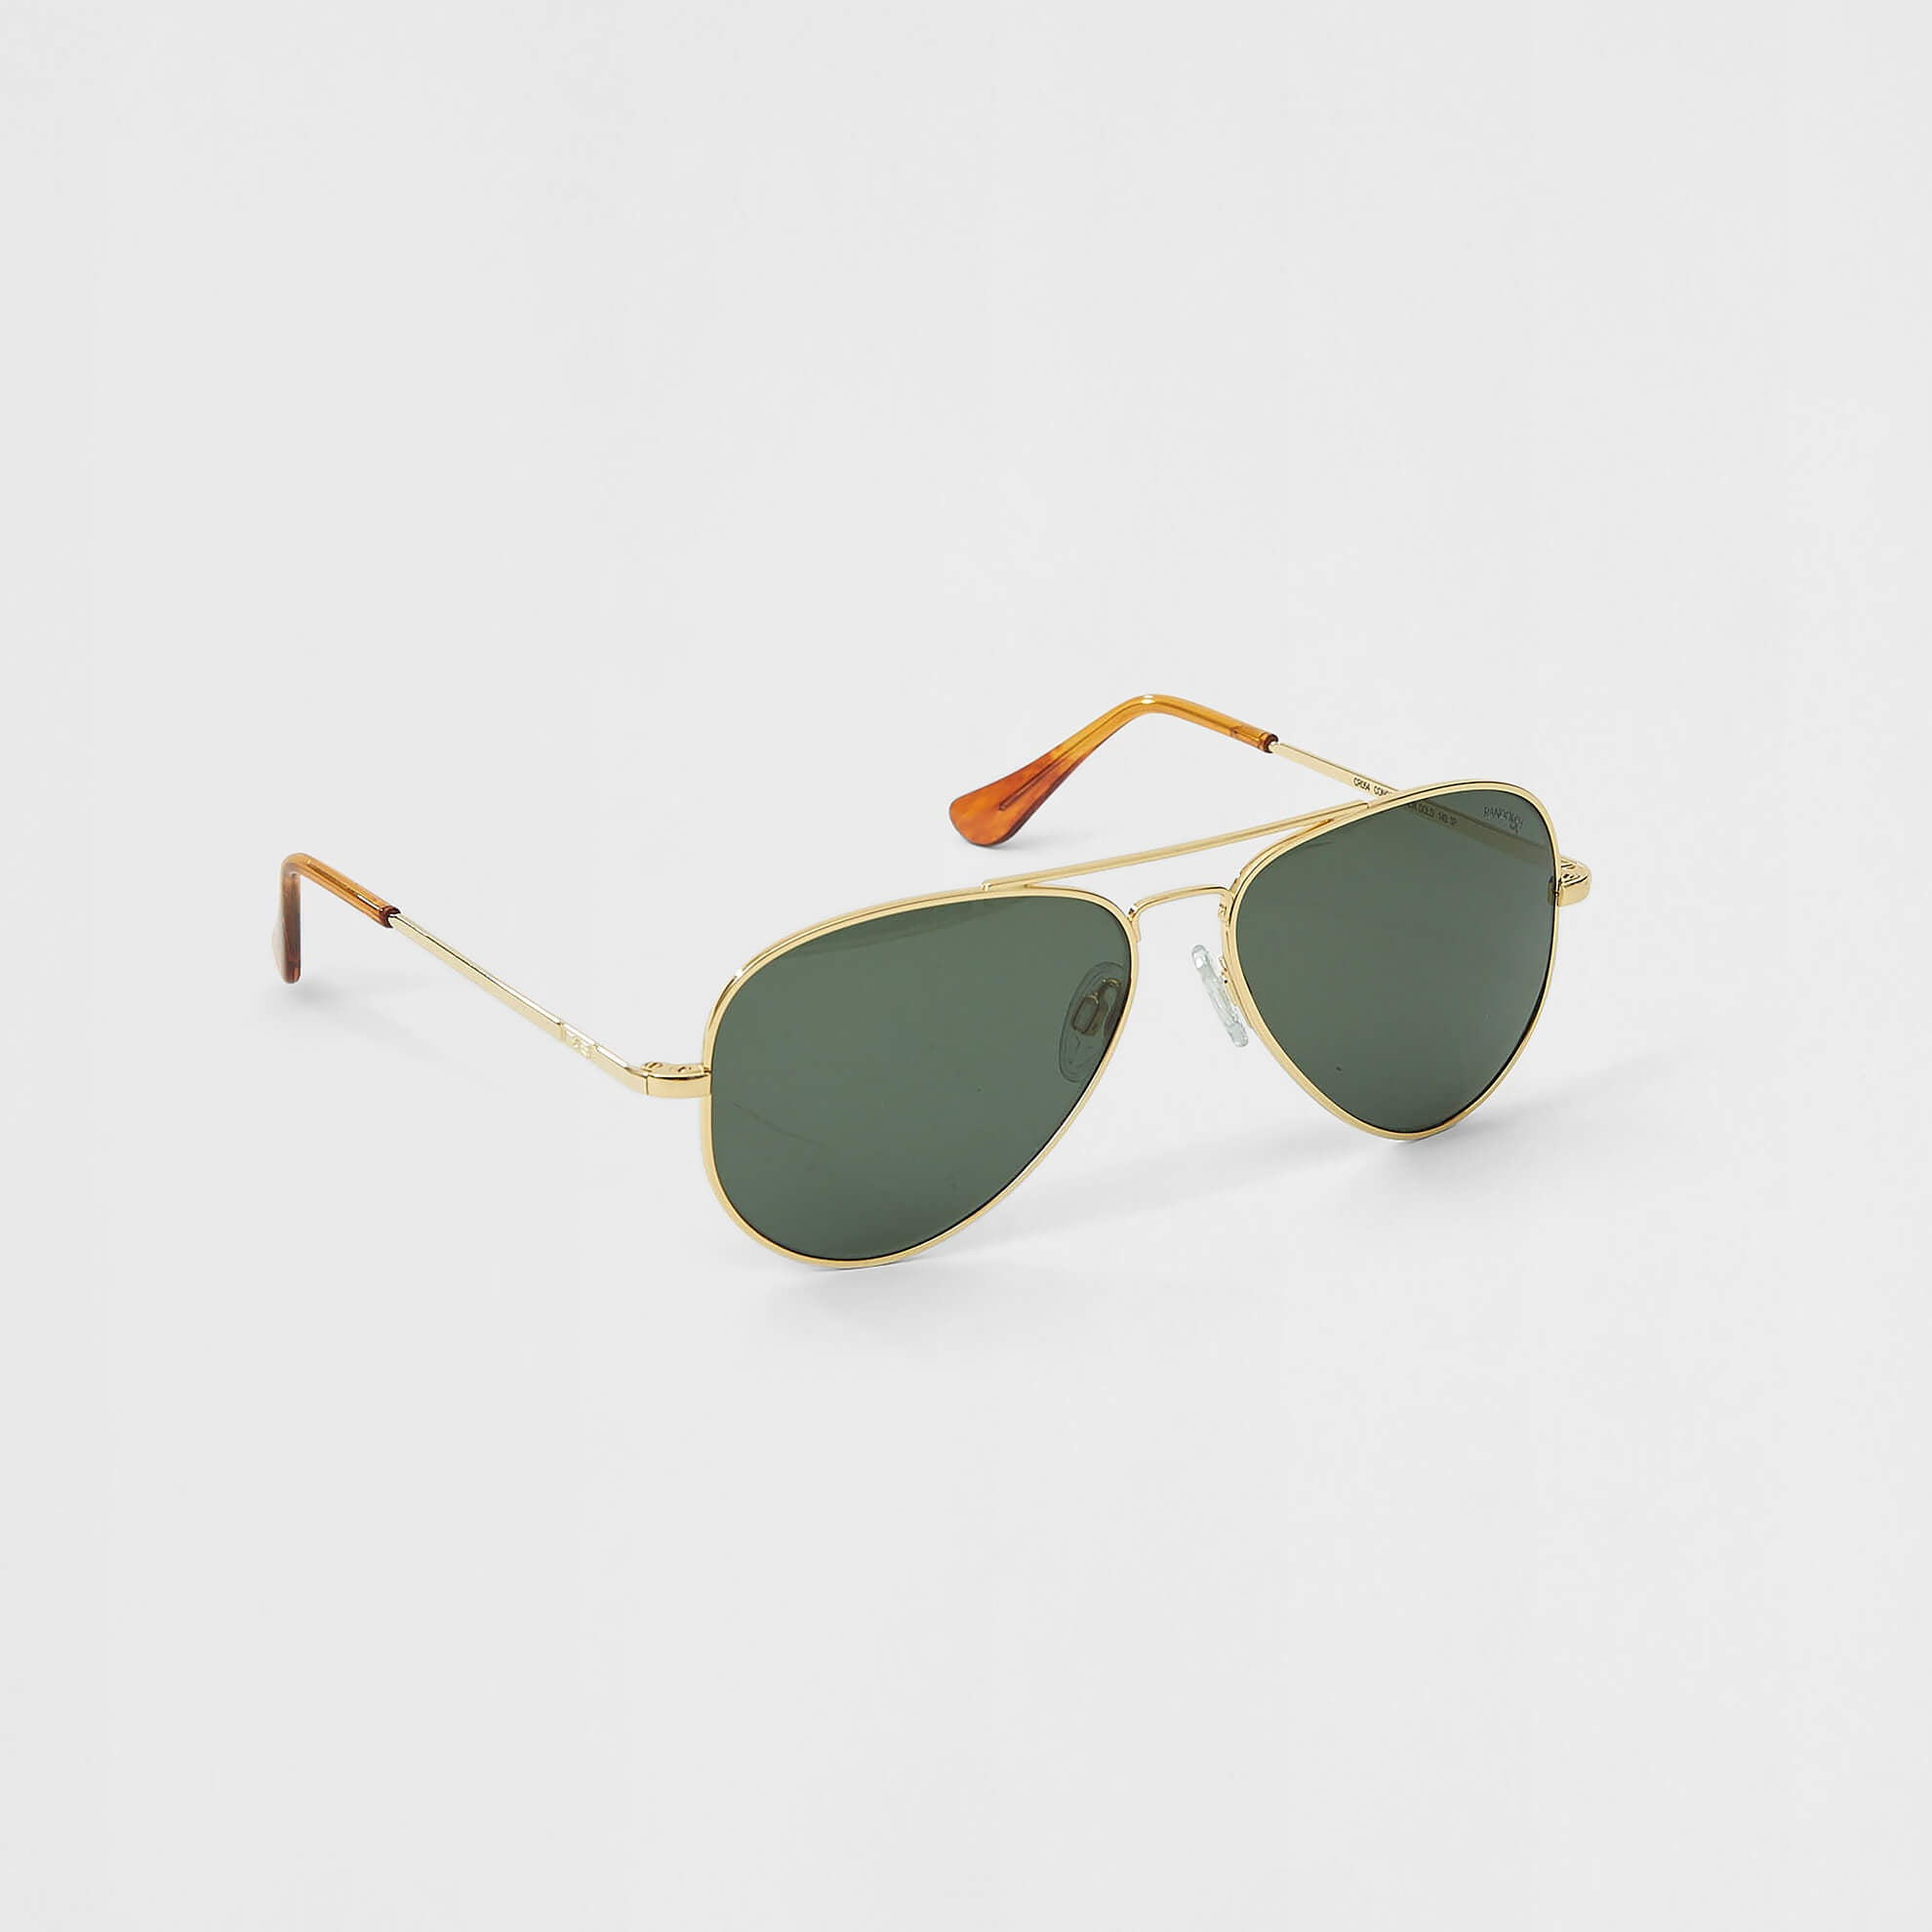 Tail Gunner Sunglasses